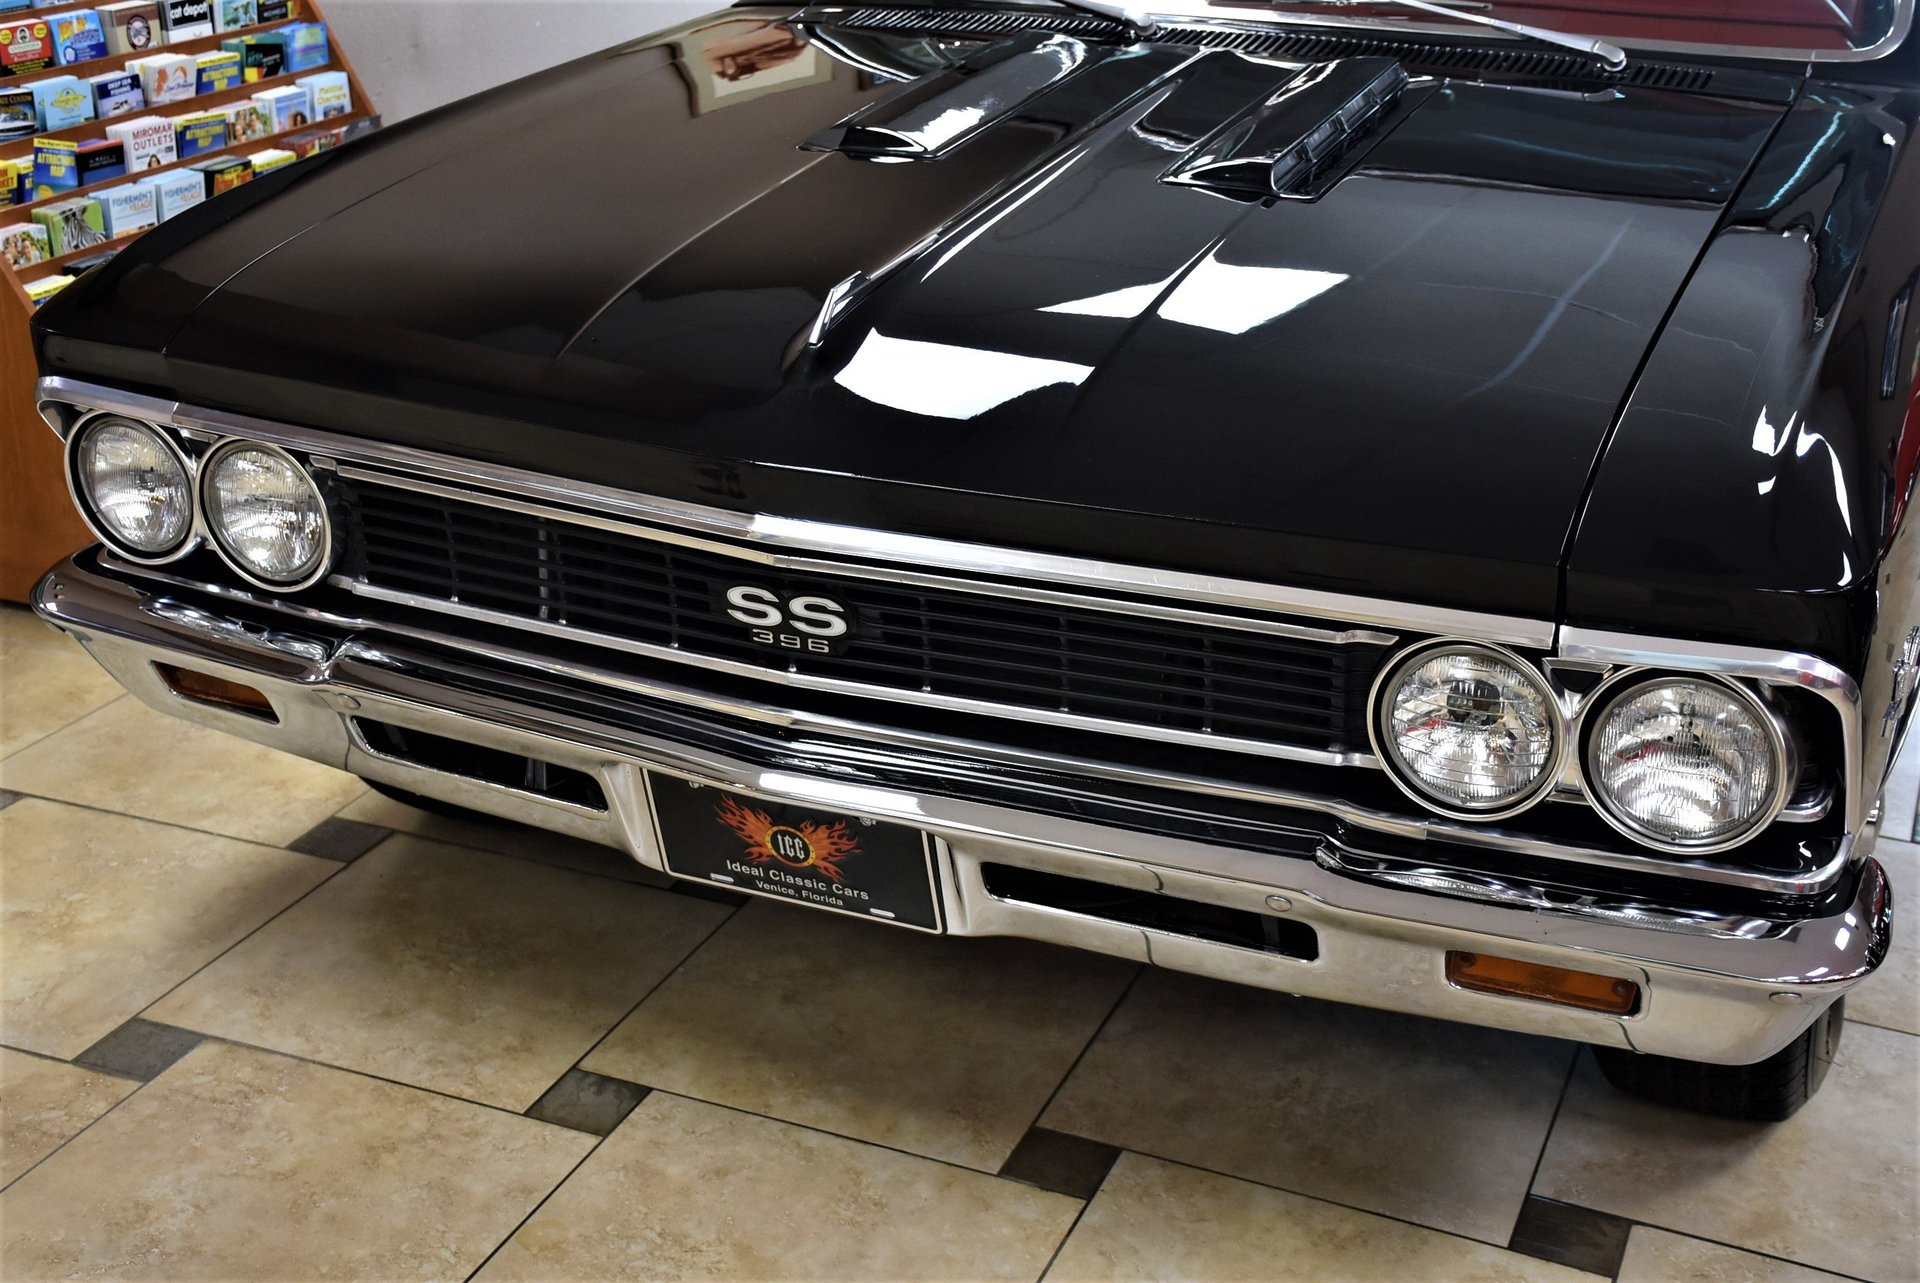 1966 Chevrolet Chevelle Ideal Classic Cars Llc Chevy Ss 396 13461d09775d1 Low Res